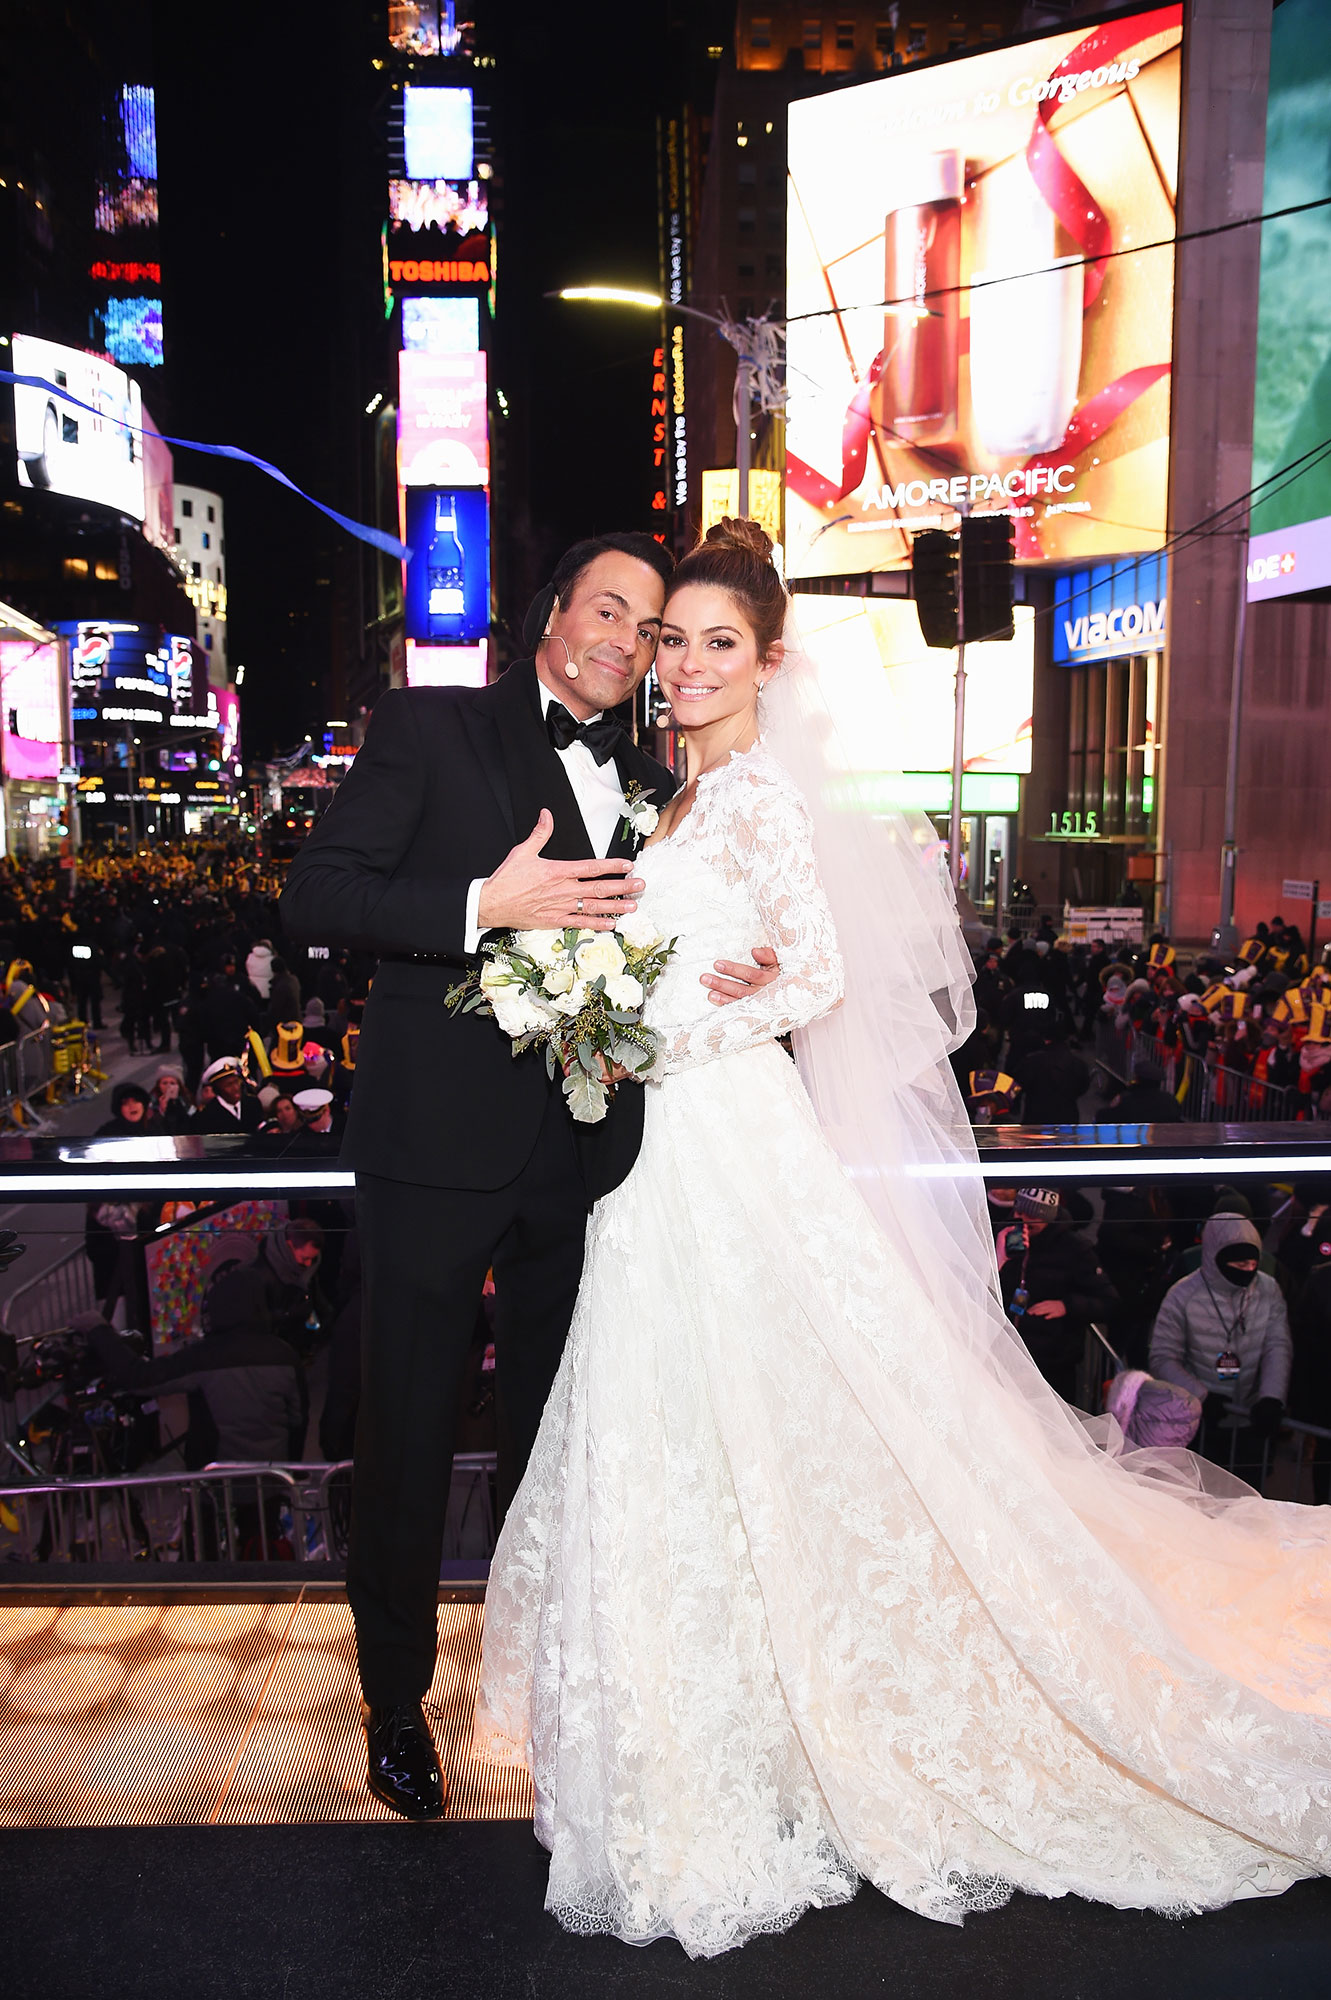 Every Star Who Got Married on New Year's Eve - Keven Undergaro (L) and Maria Menounos hold their wedding ceremony during Maria Menounos and Steve Harvey Live from Times Square at Marriott Marquis Times Square on December 31, 2017 in New York City.